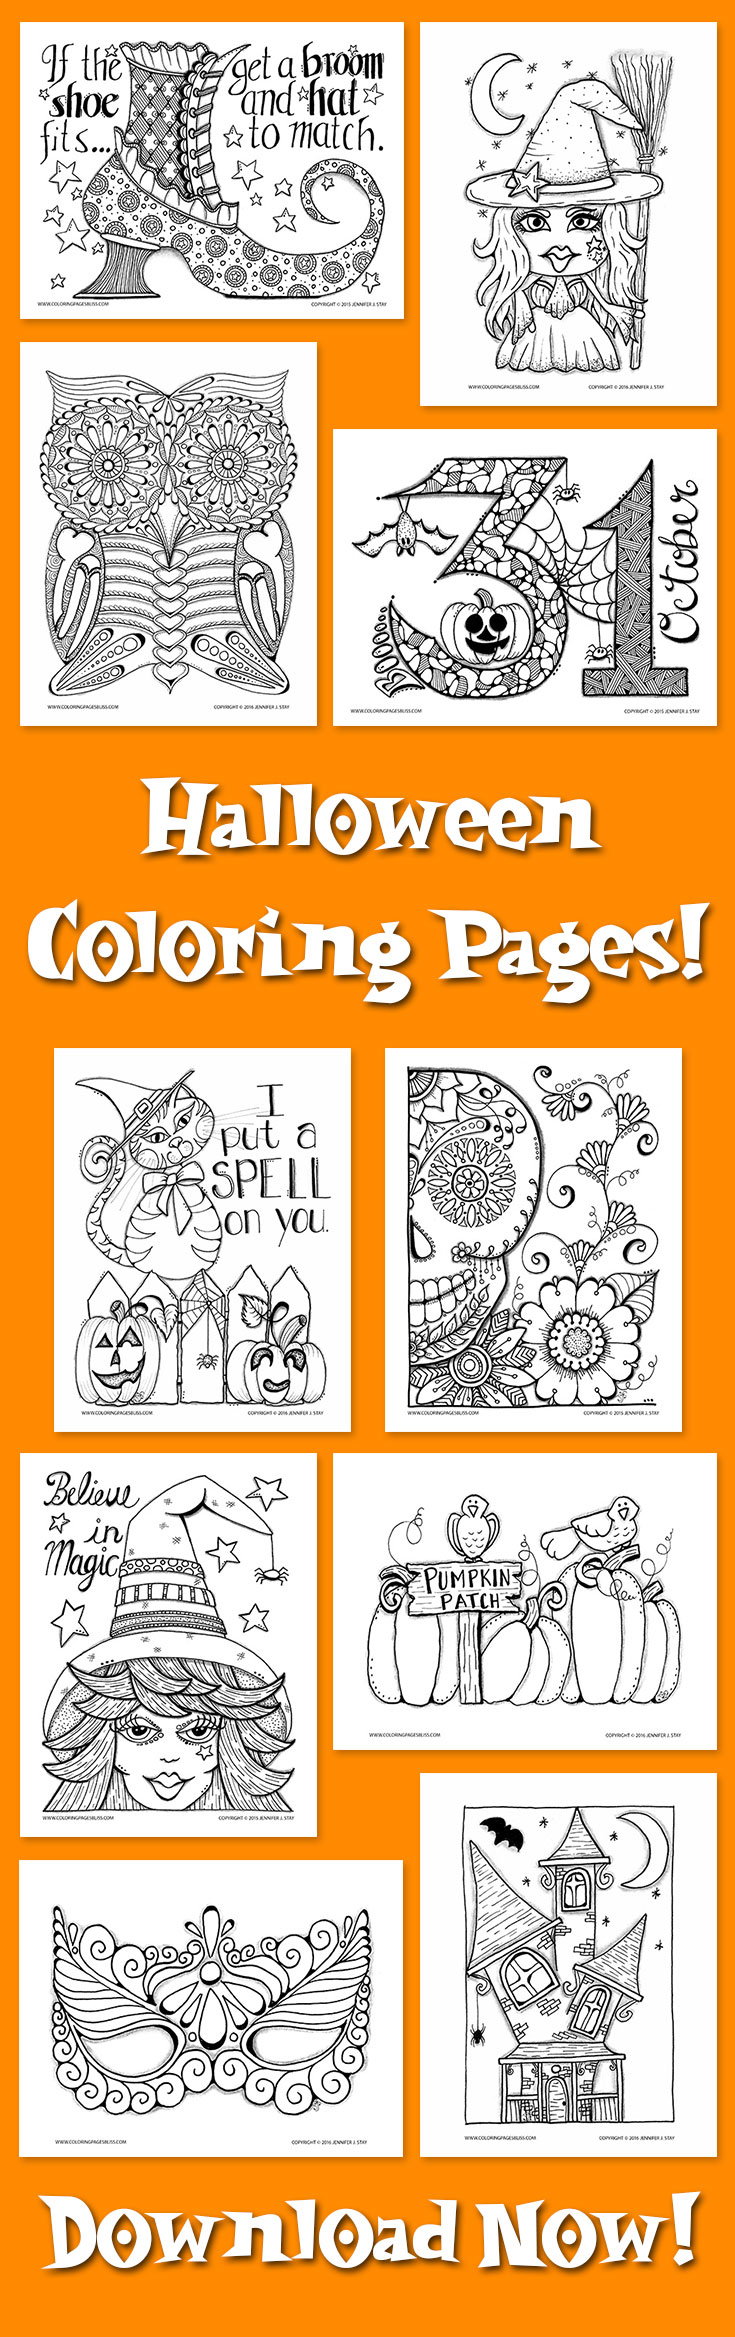 Download Halloween Coloring Pages